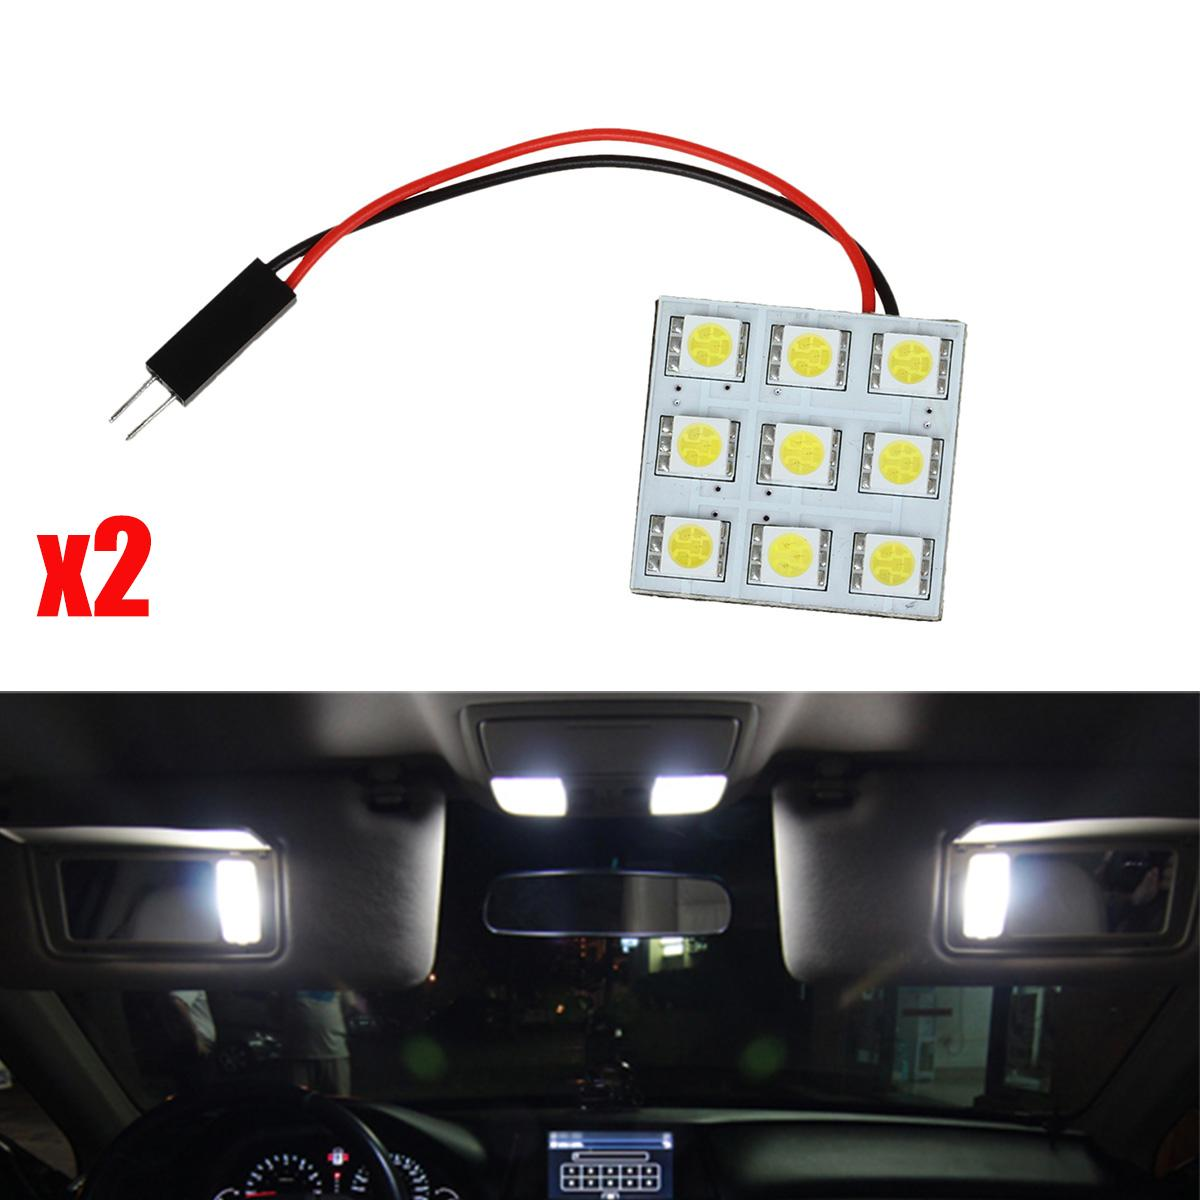 2x xenon white 9smd 5050 led festoon light panel t10 ba9s dome map 12v bulbs ebay. Black Bedroom Furniture Sets. Home Design Ideas